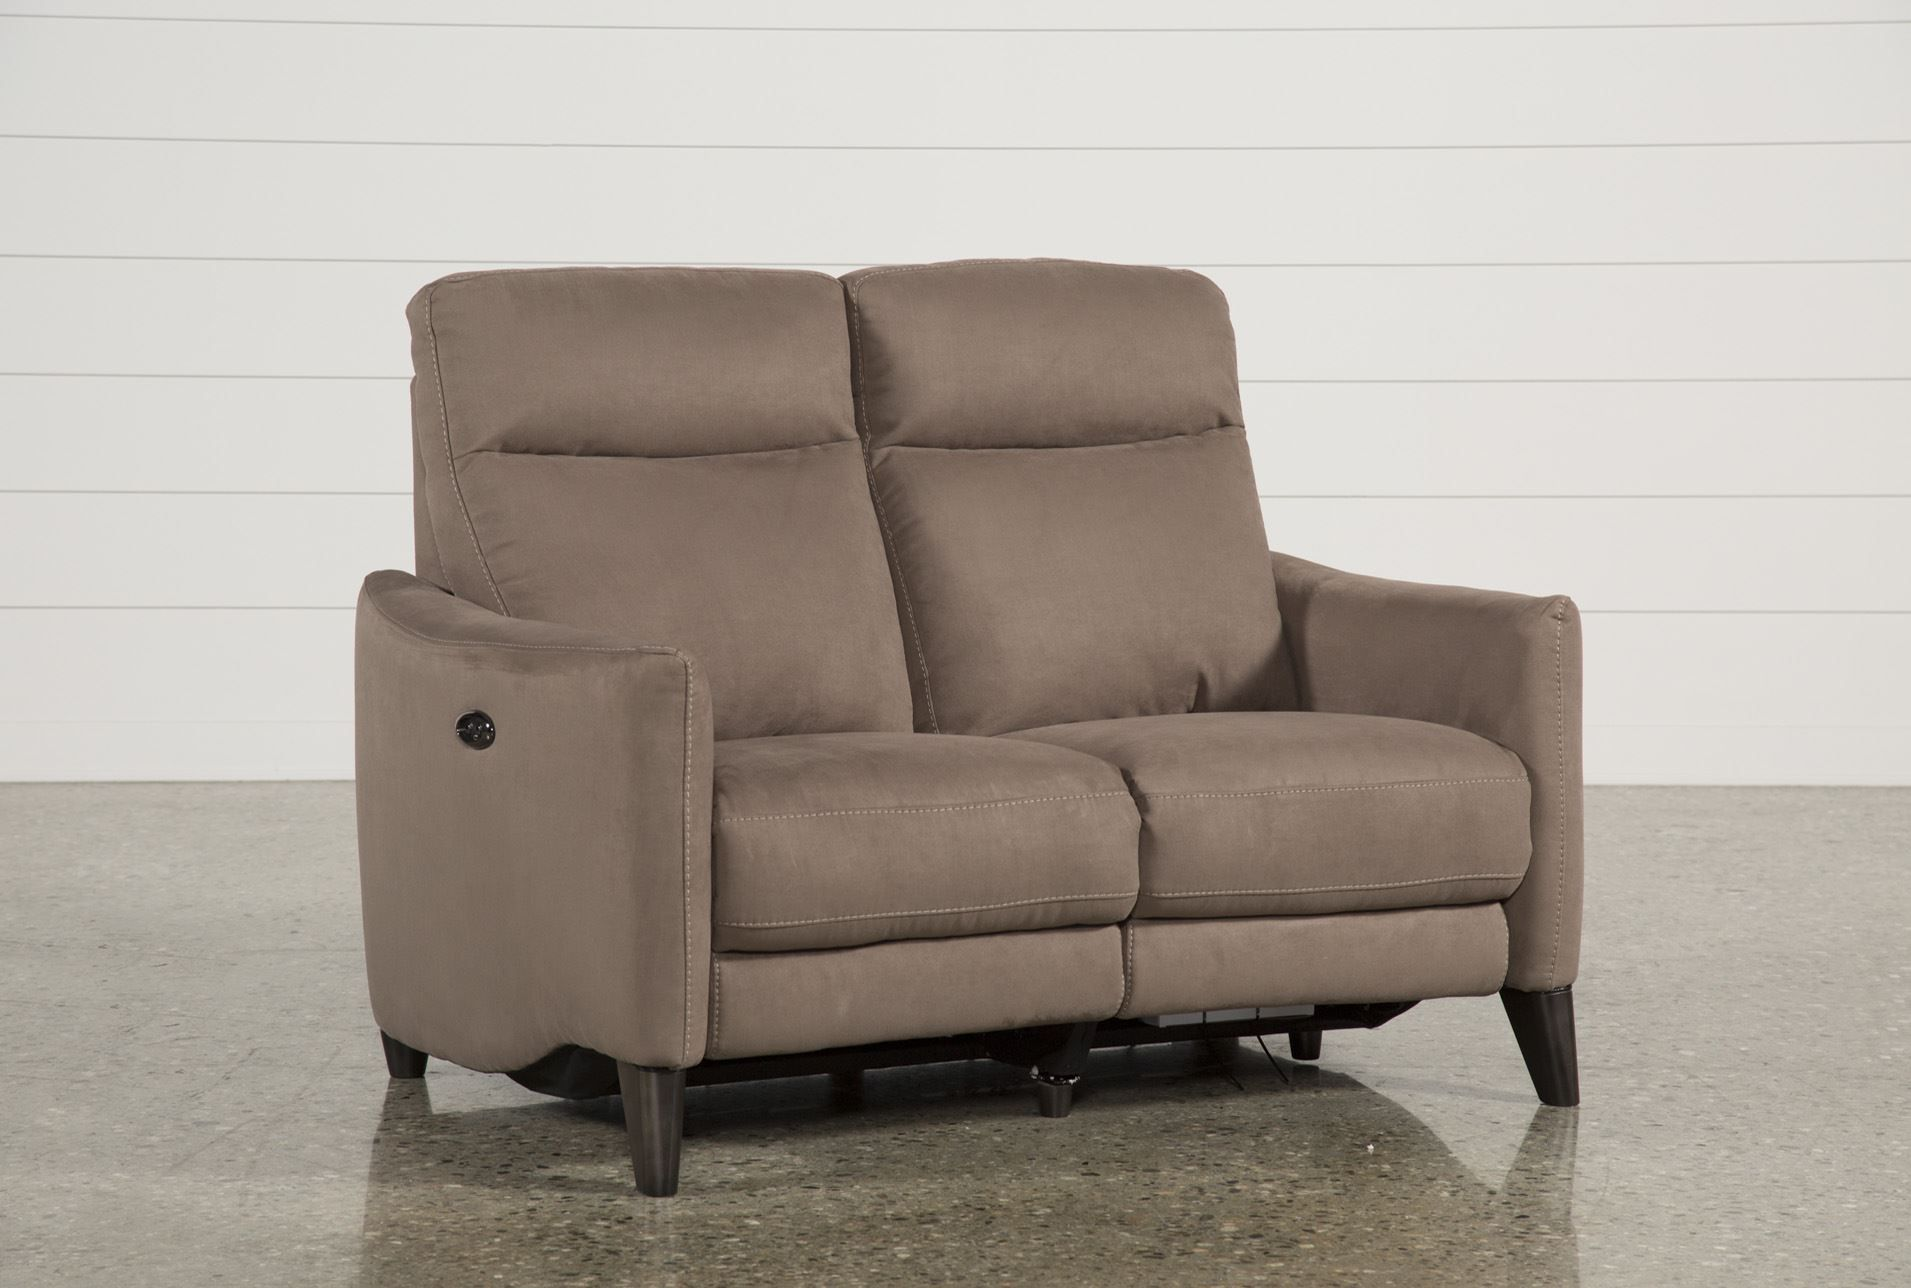 Tricia 60 Square Arm Reclining Loveseat Sofas For Small Spaces Love Seat Loveseat Living Room